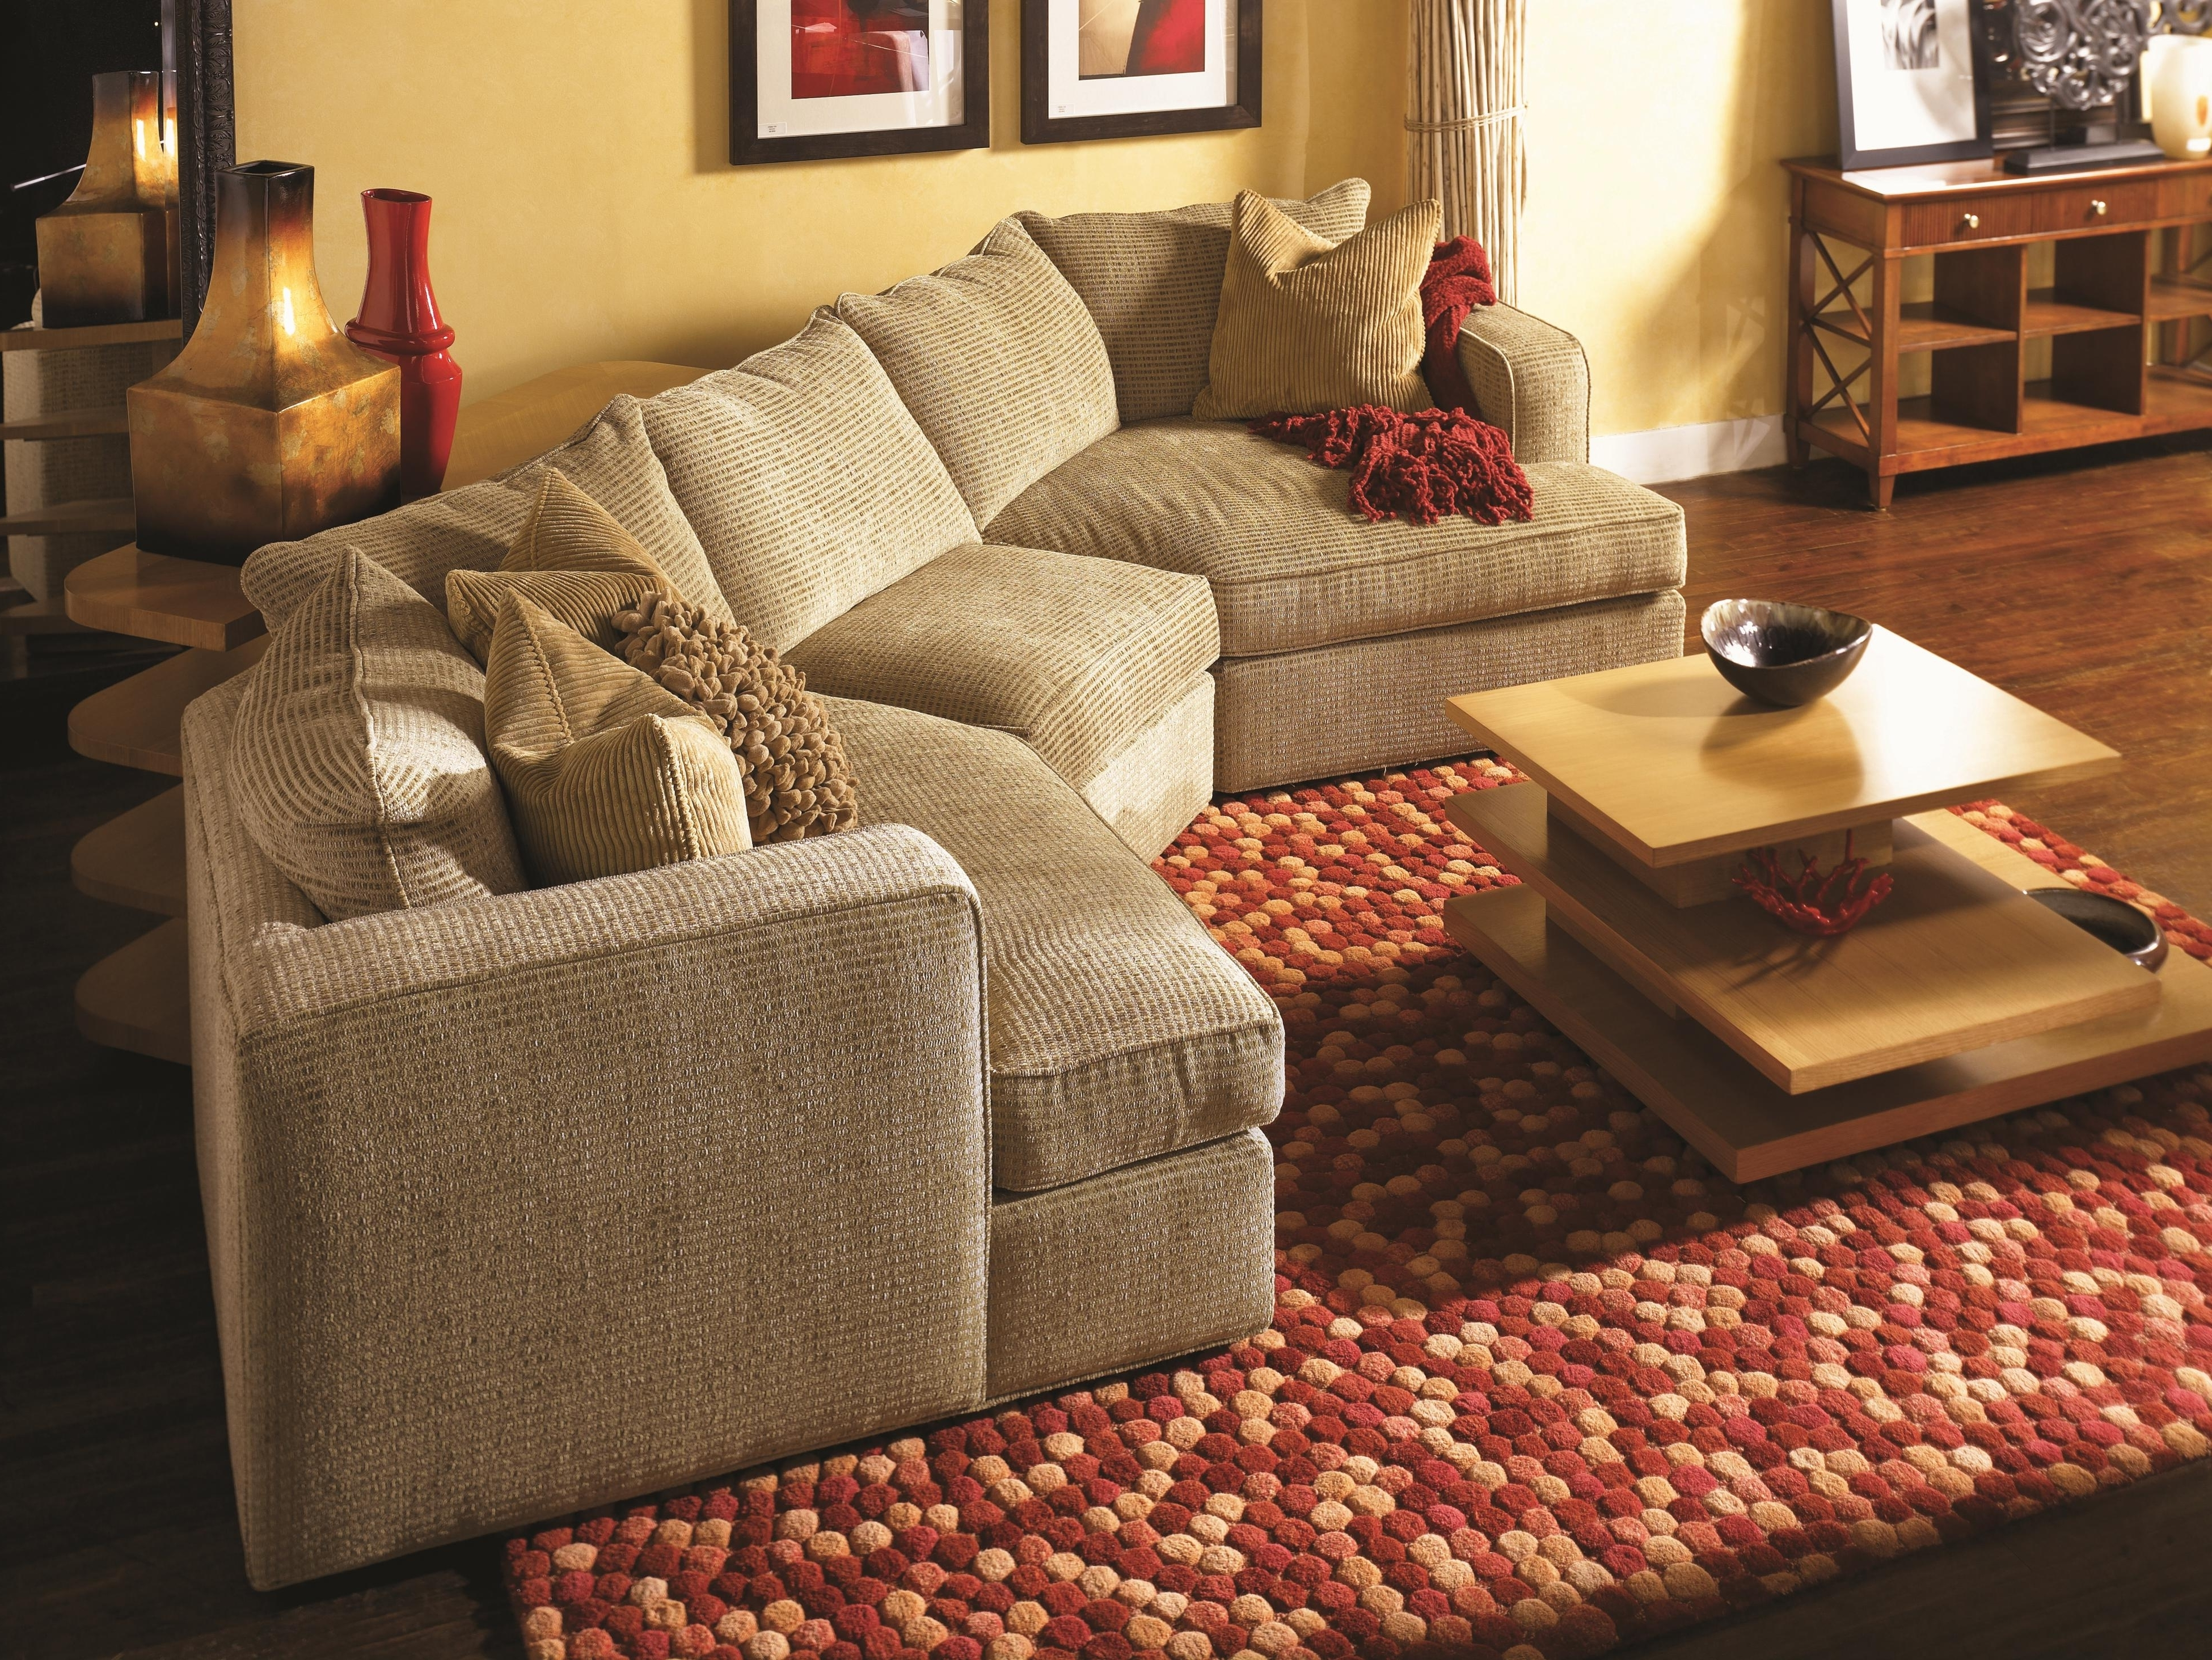 Cosy Angled Chaise Sofa On Chaise Angled Chaise Sofa Full Size Of Within Fashionable Angled Chaise Sofas (View 8 of 15)